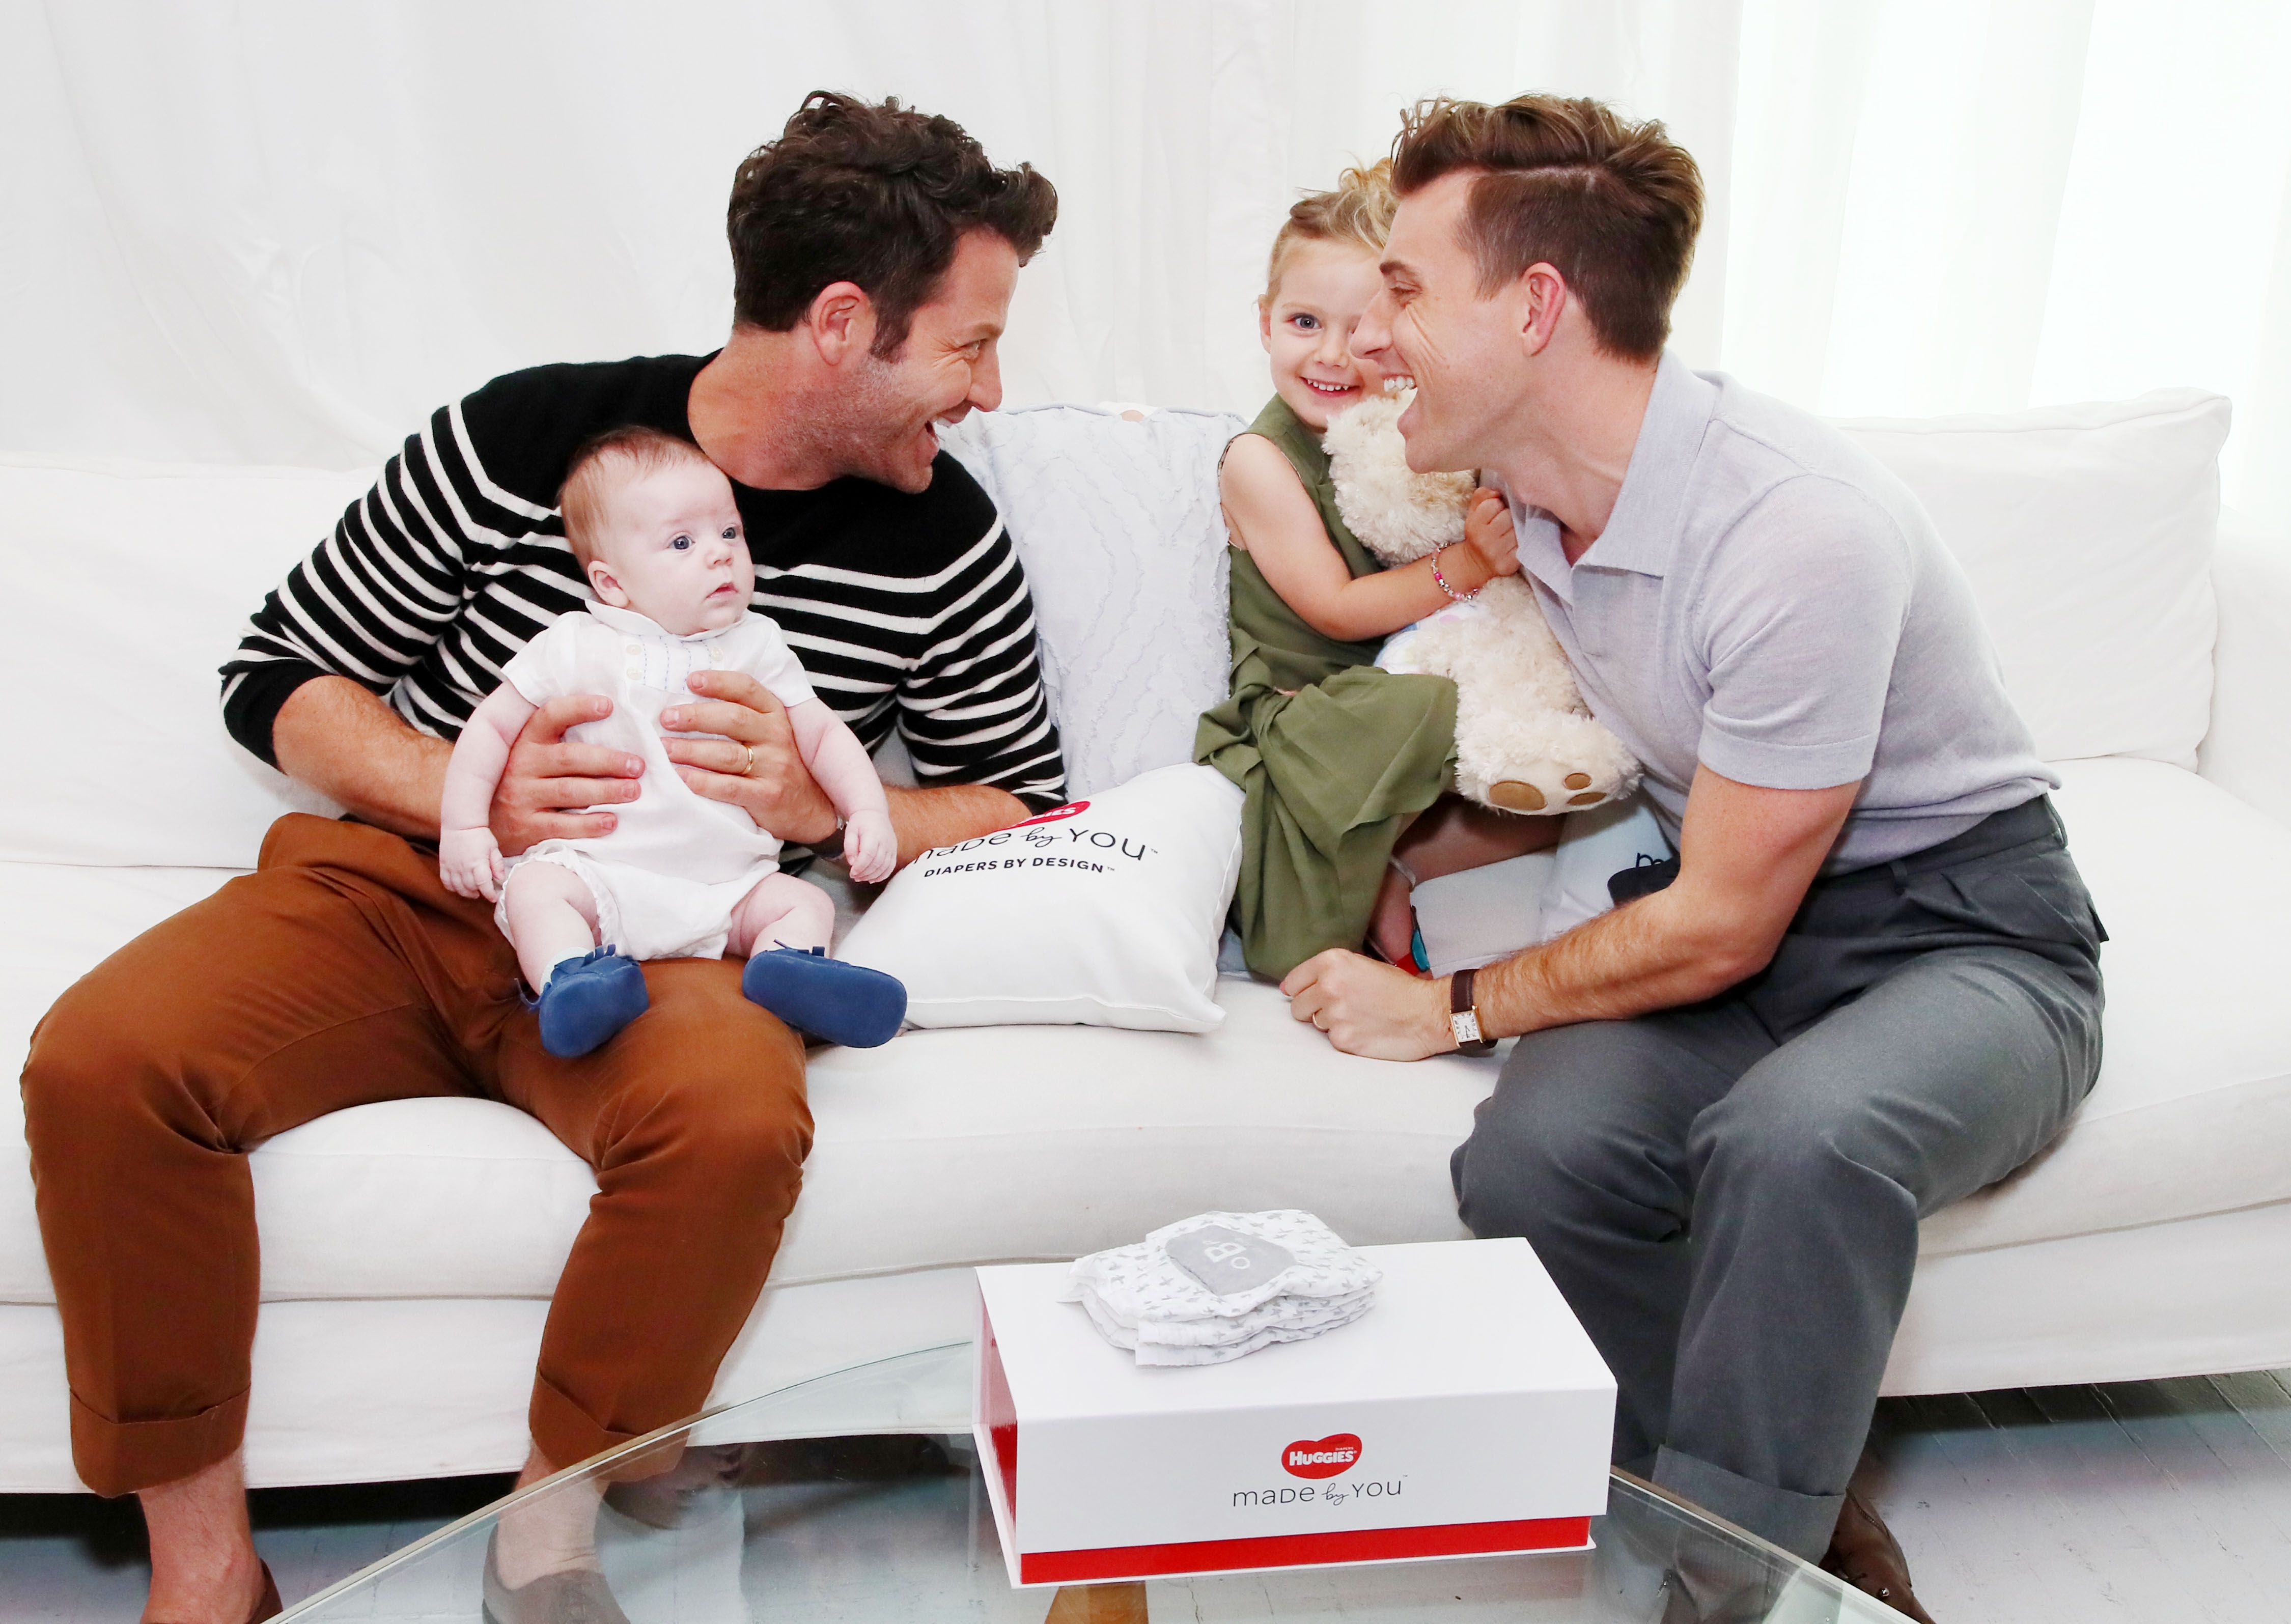 Best Of Nate Berkus And Jeremiah Brent's New Upholstery Collection Regarding Ames Arm Sofa Chairs By Nate Berkus And Jeremiah Brent (View 11 of 25)